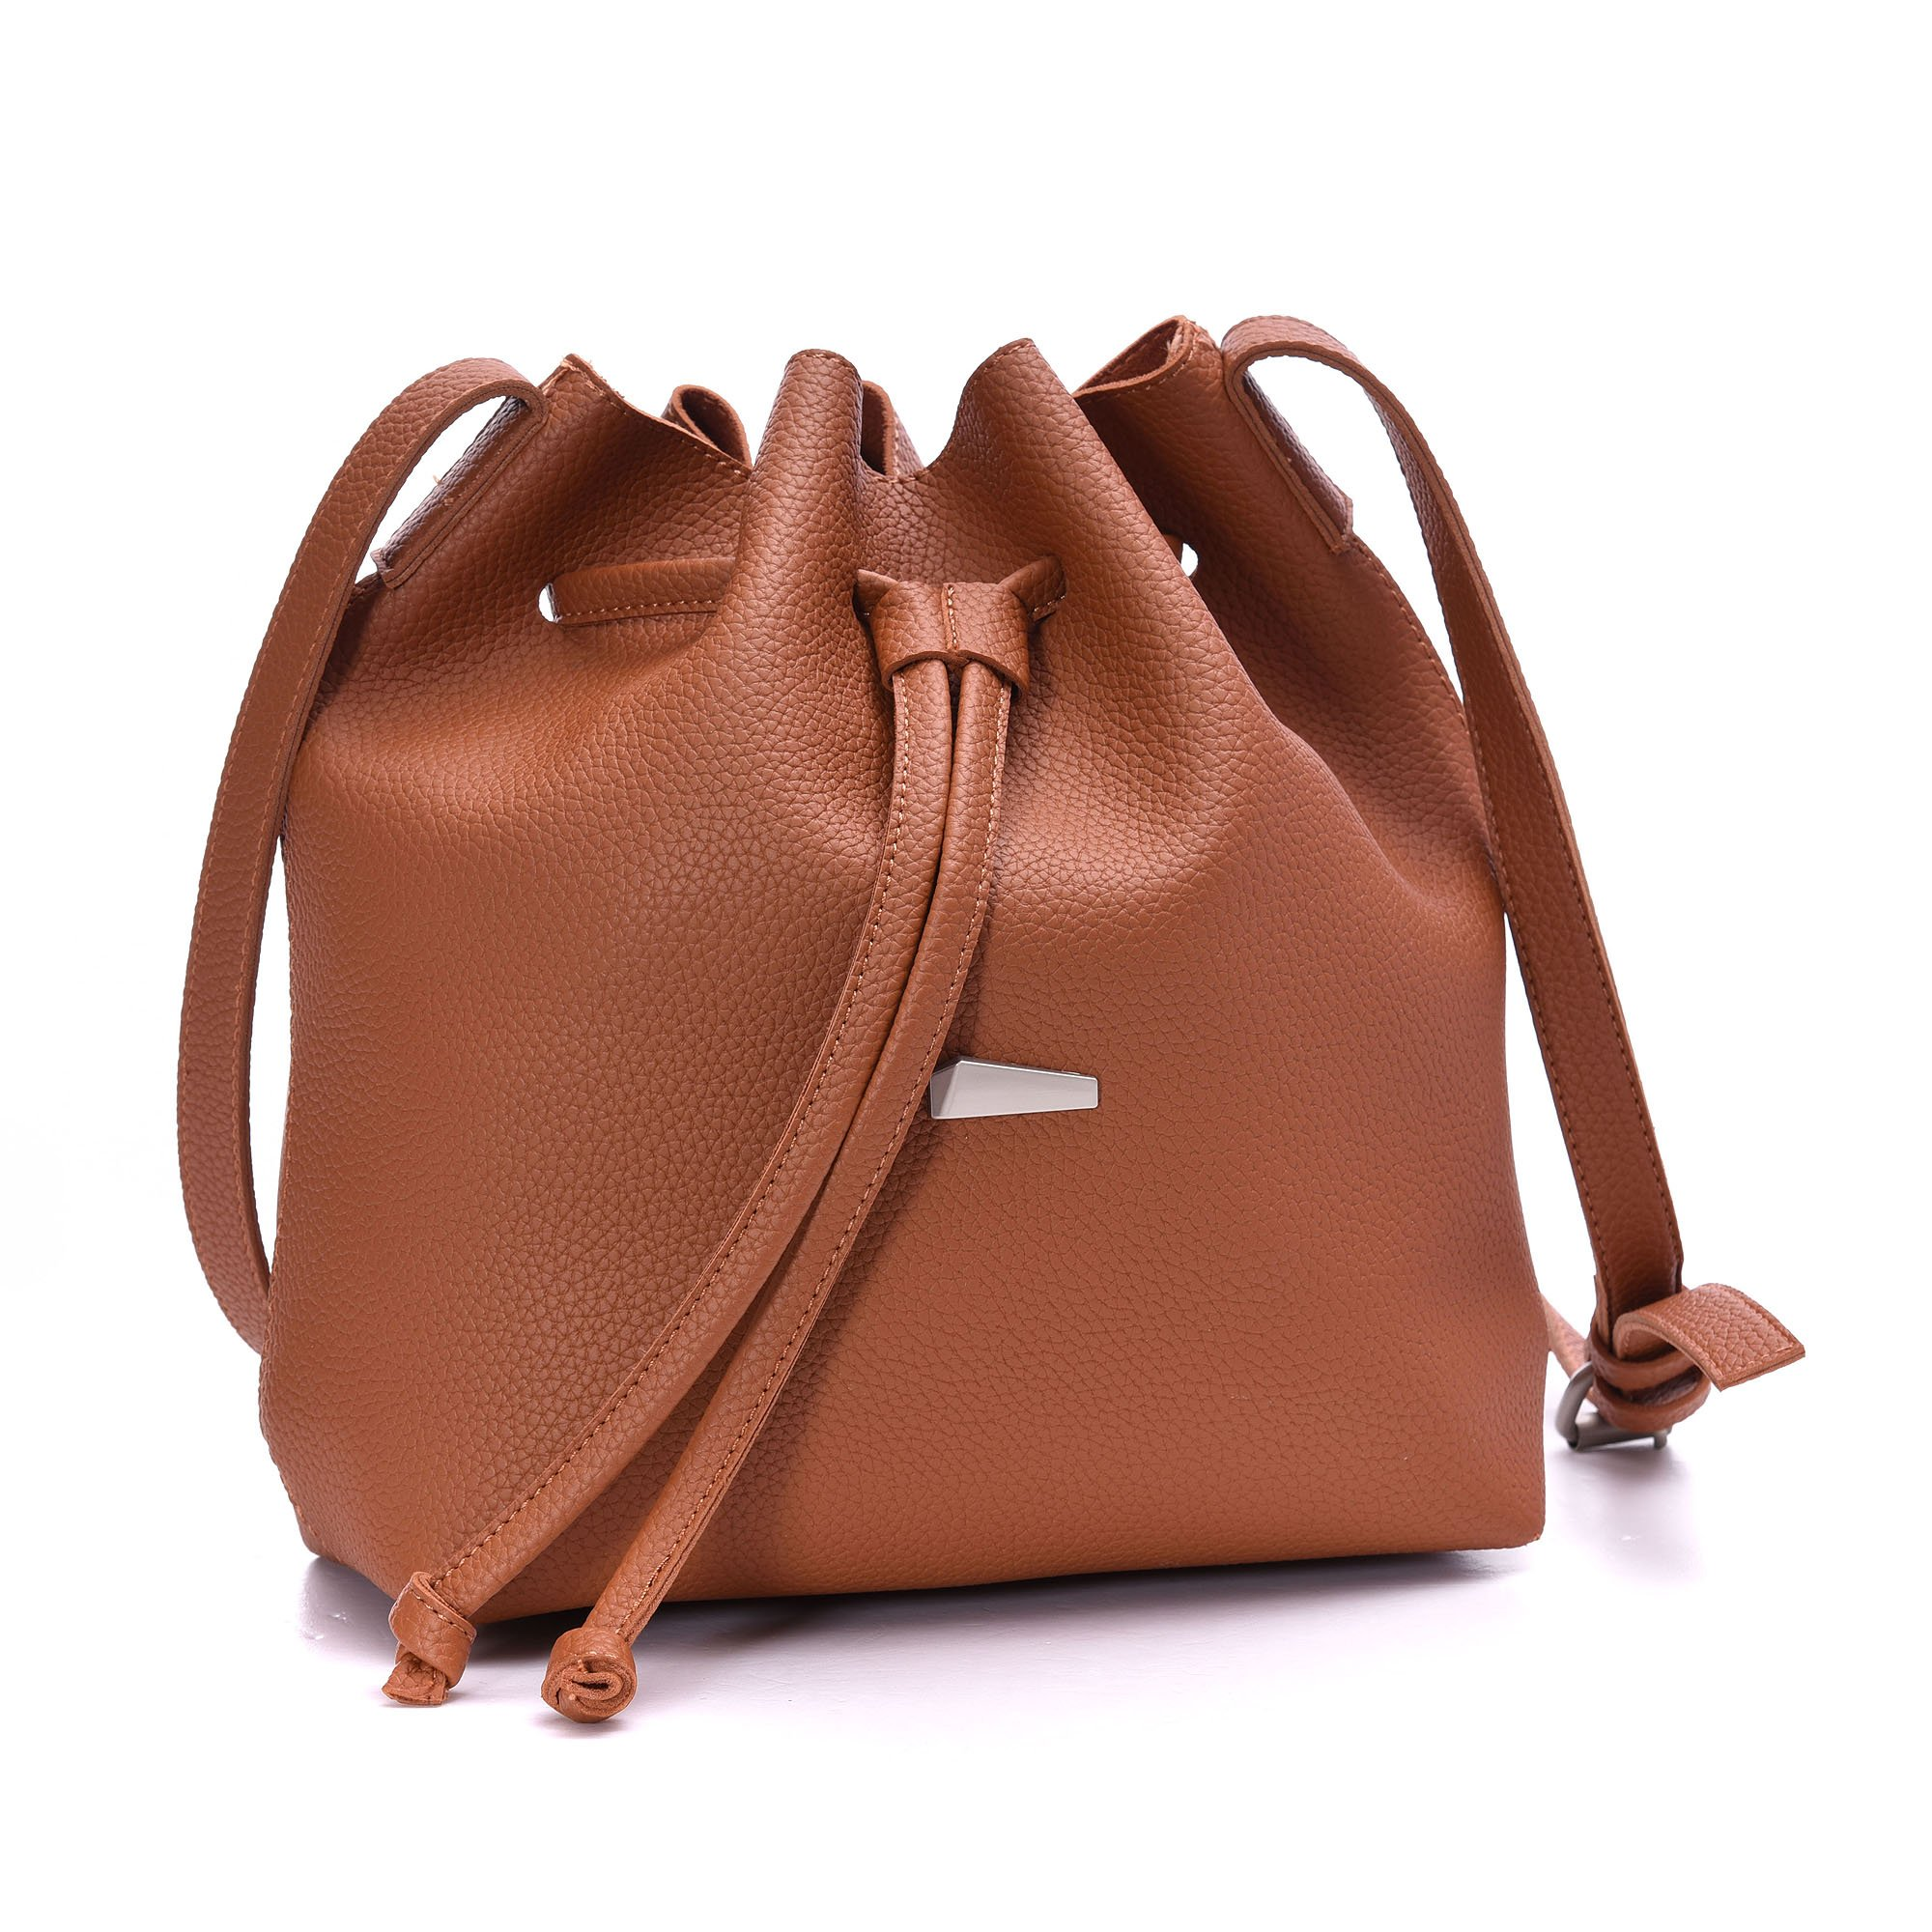 Drawstring Bucket Bags 2 Pieces Set, Artmis Women Small Cross-body Purses PU Leather (Brown)